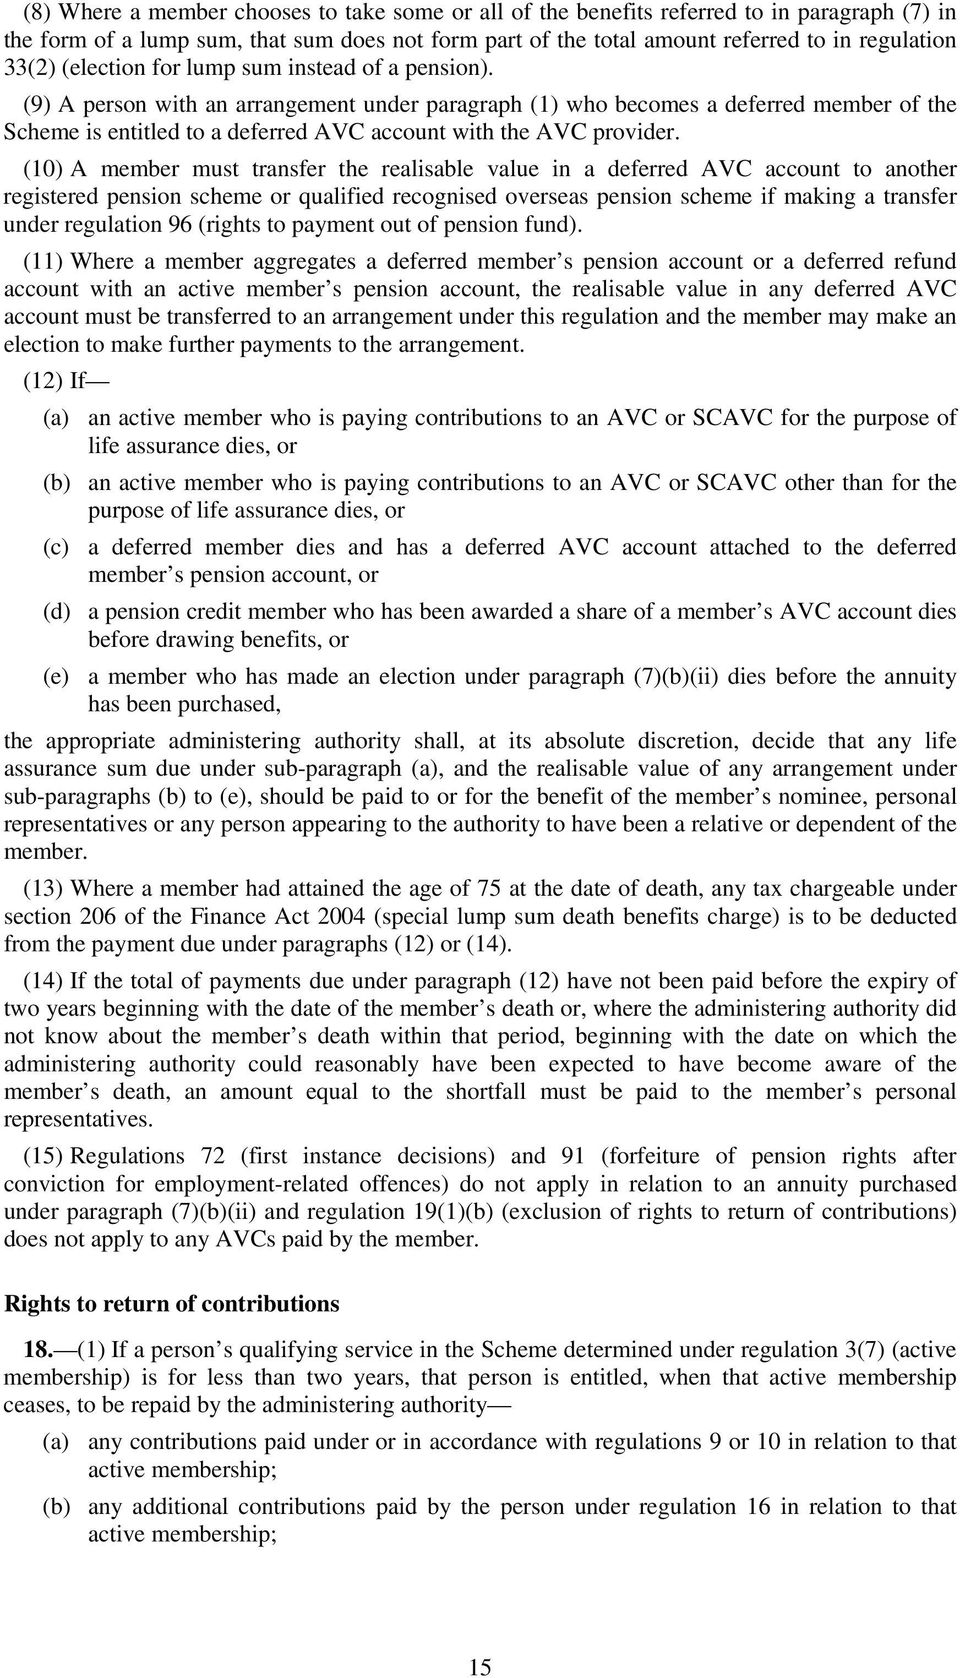 (9) A person with an arrangement under paragraph (1) who becomes a deferred member of the Scheme is entitled to a deferred AVC account with the AVC provider.